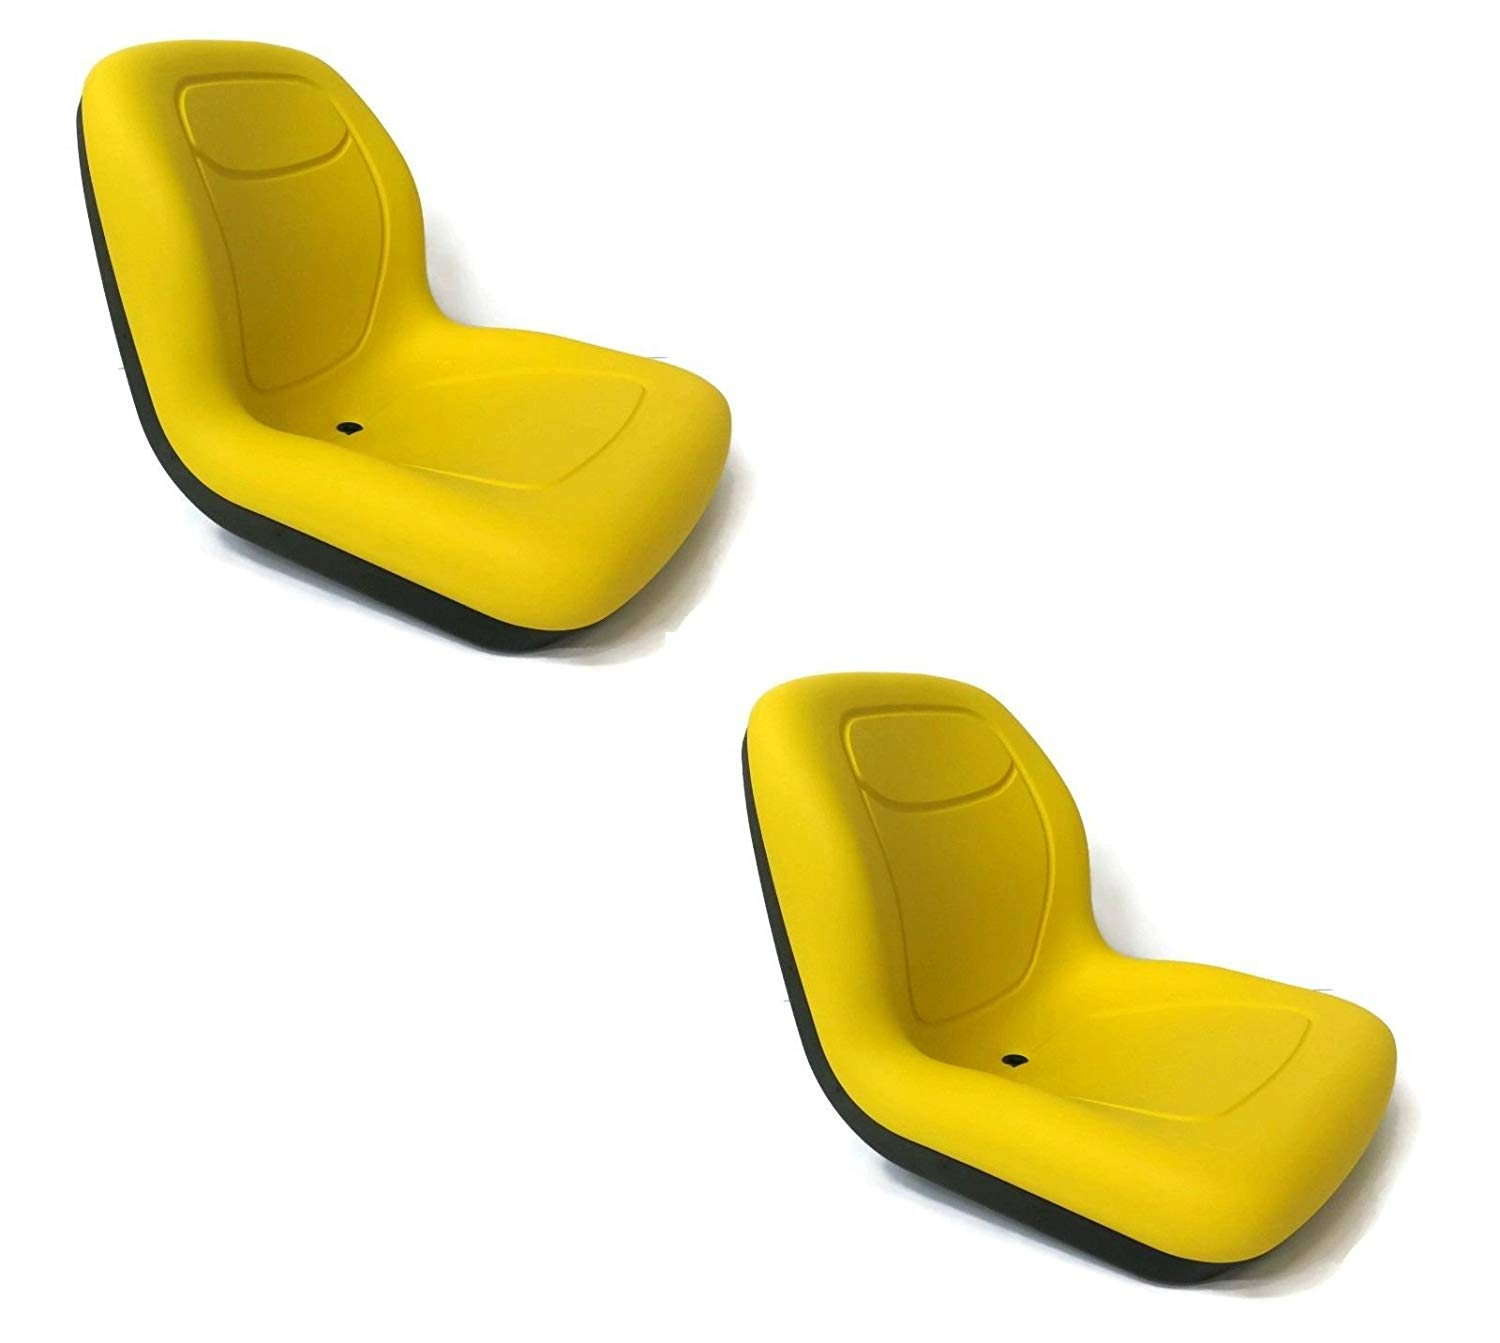 The ROP Shop (2) Yellow HIGH Back Seats for John Deere VG11696 VG12160 VGA10177 XB180 XB-180